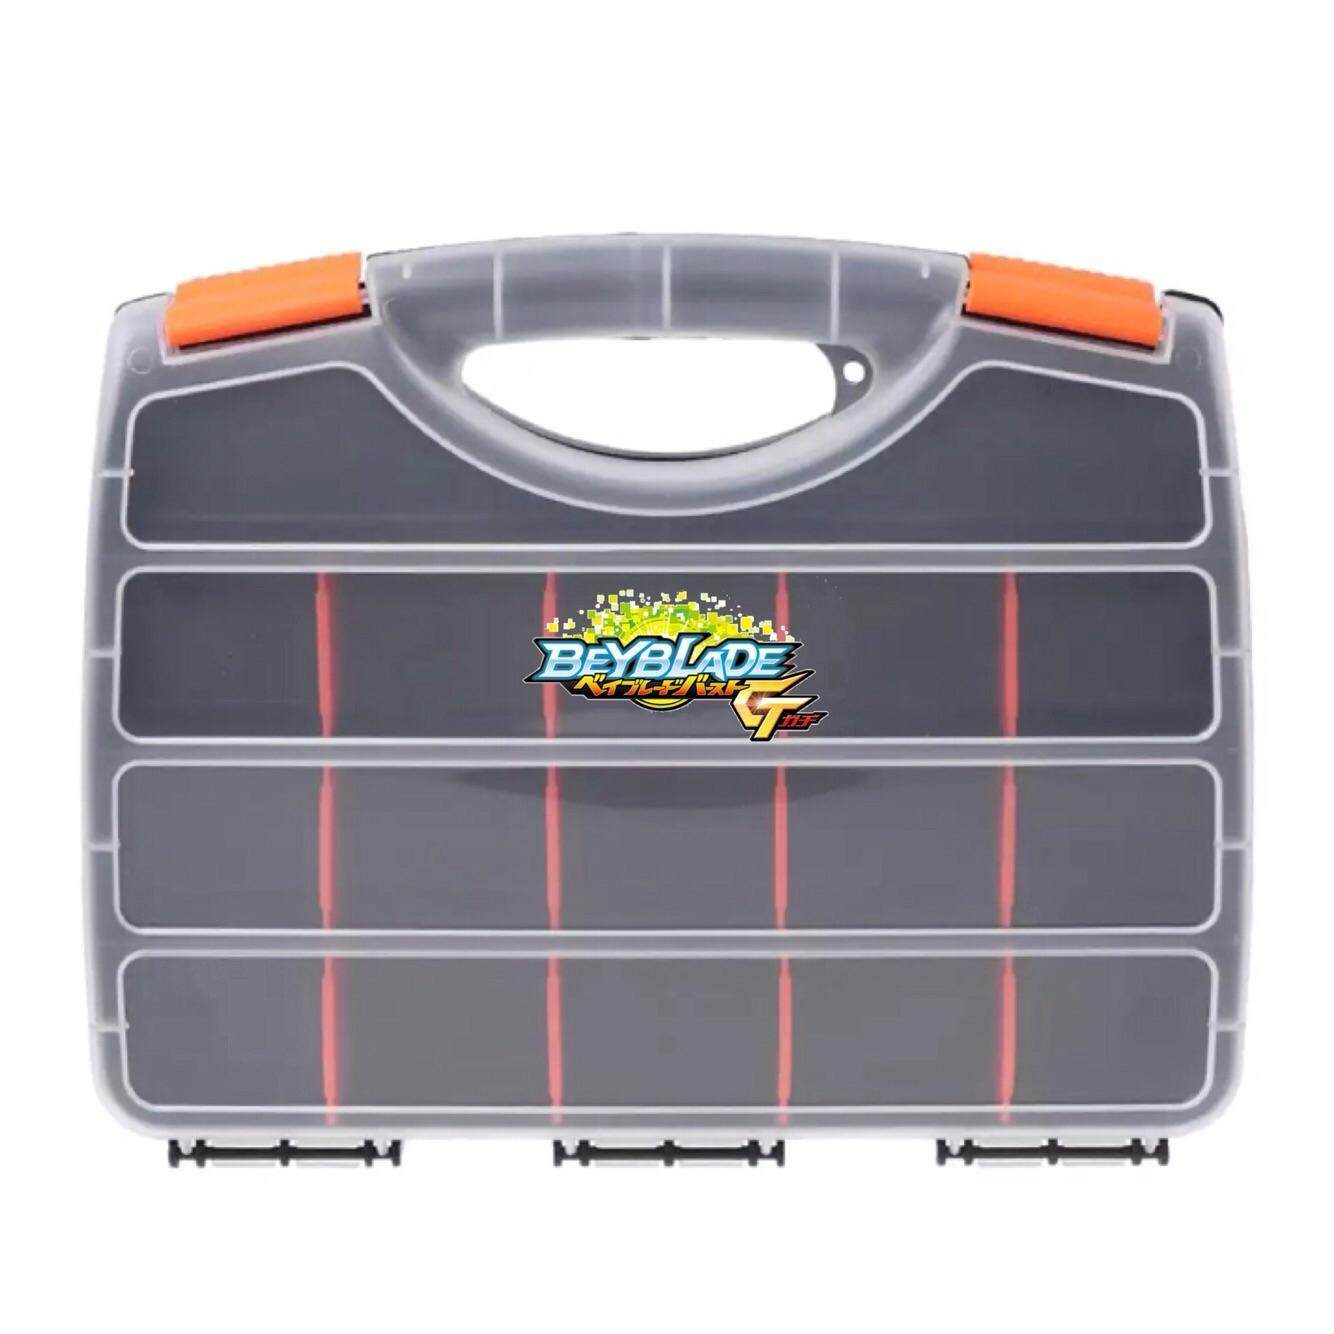 Last 1 Beyblade Storage Case With 1 Free Gift